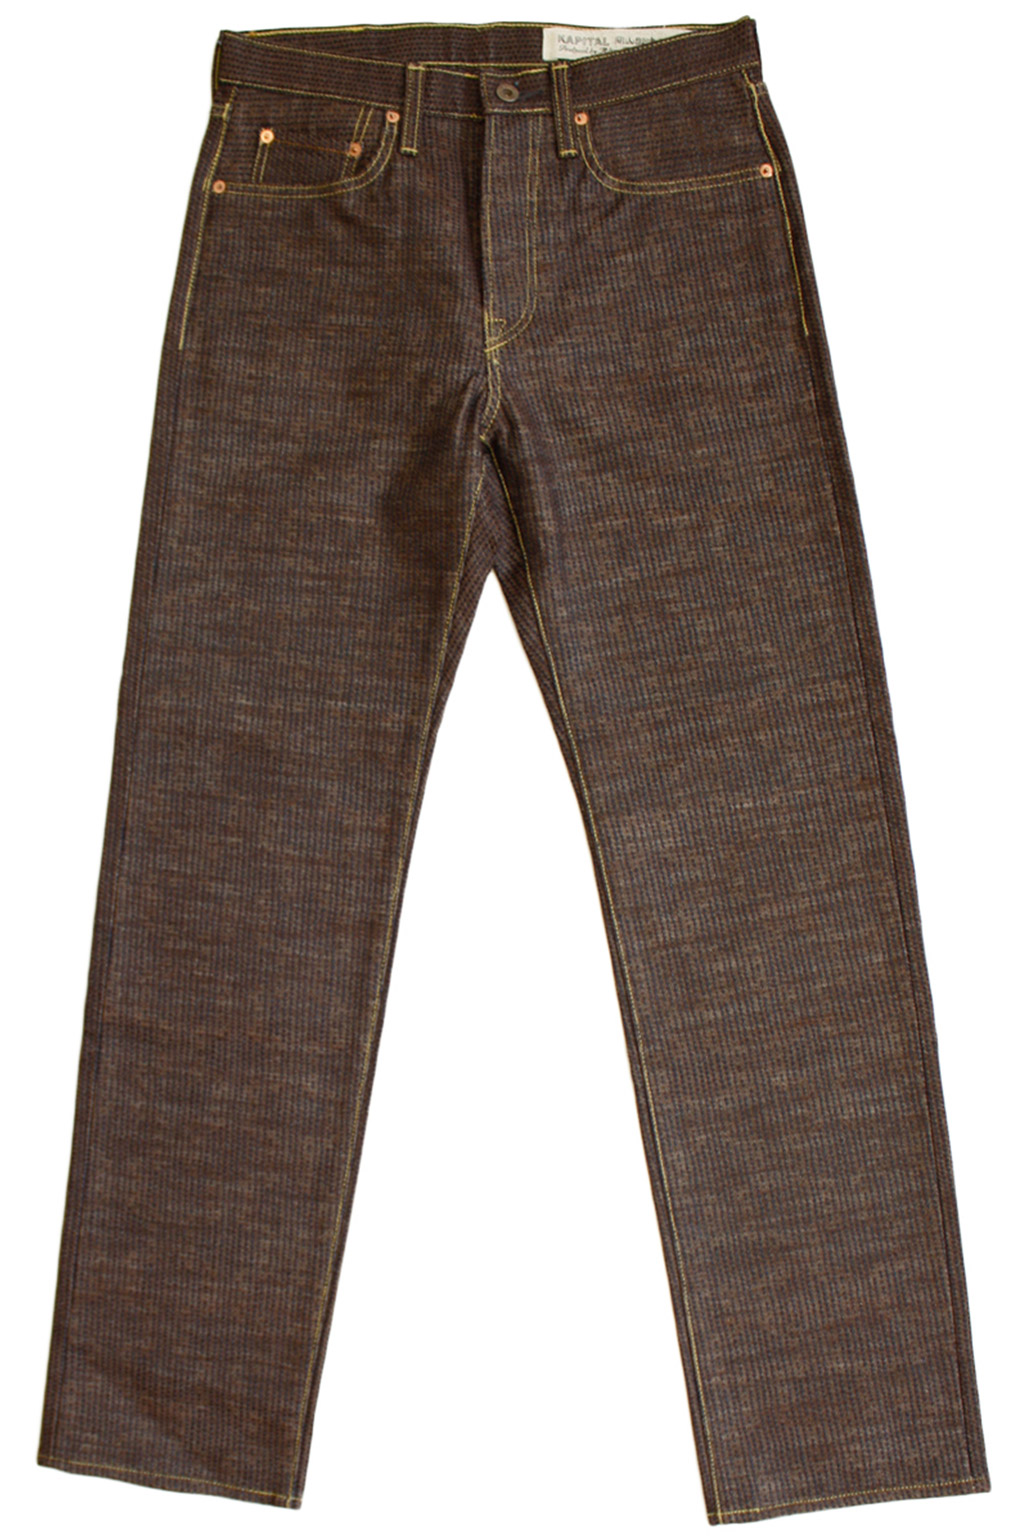 Century Denim 5P CISCO N5S - Brown